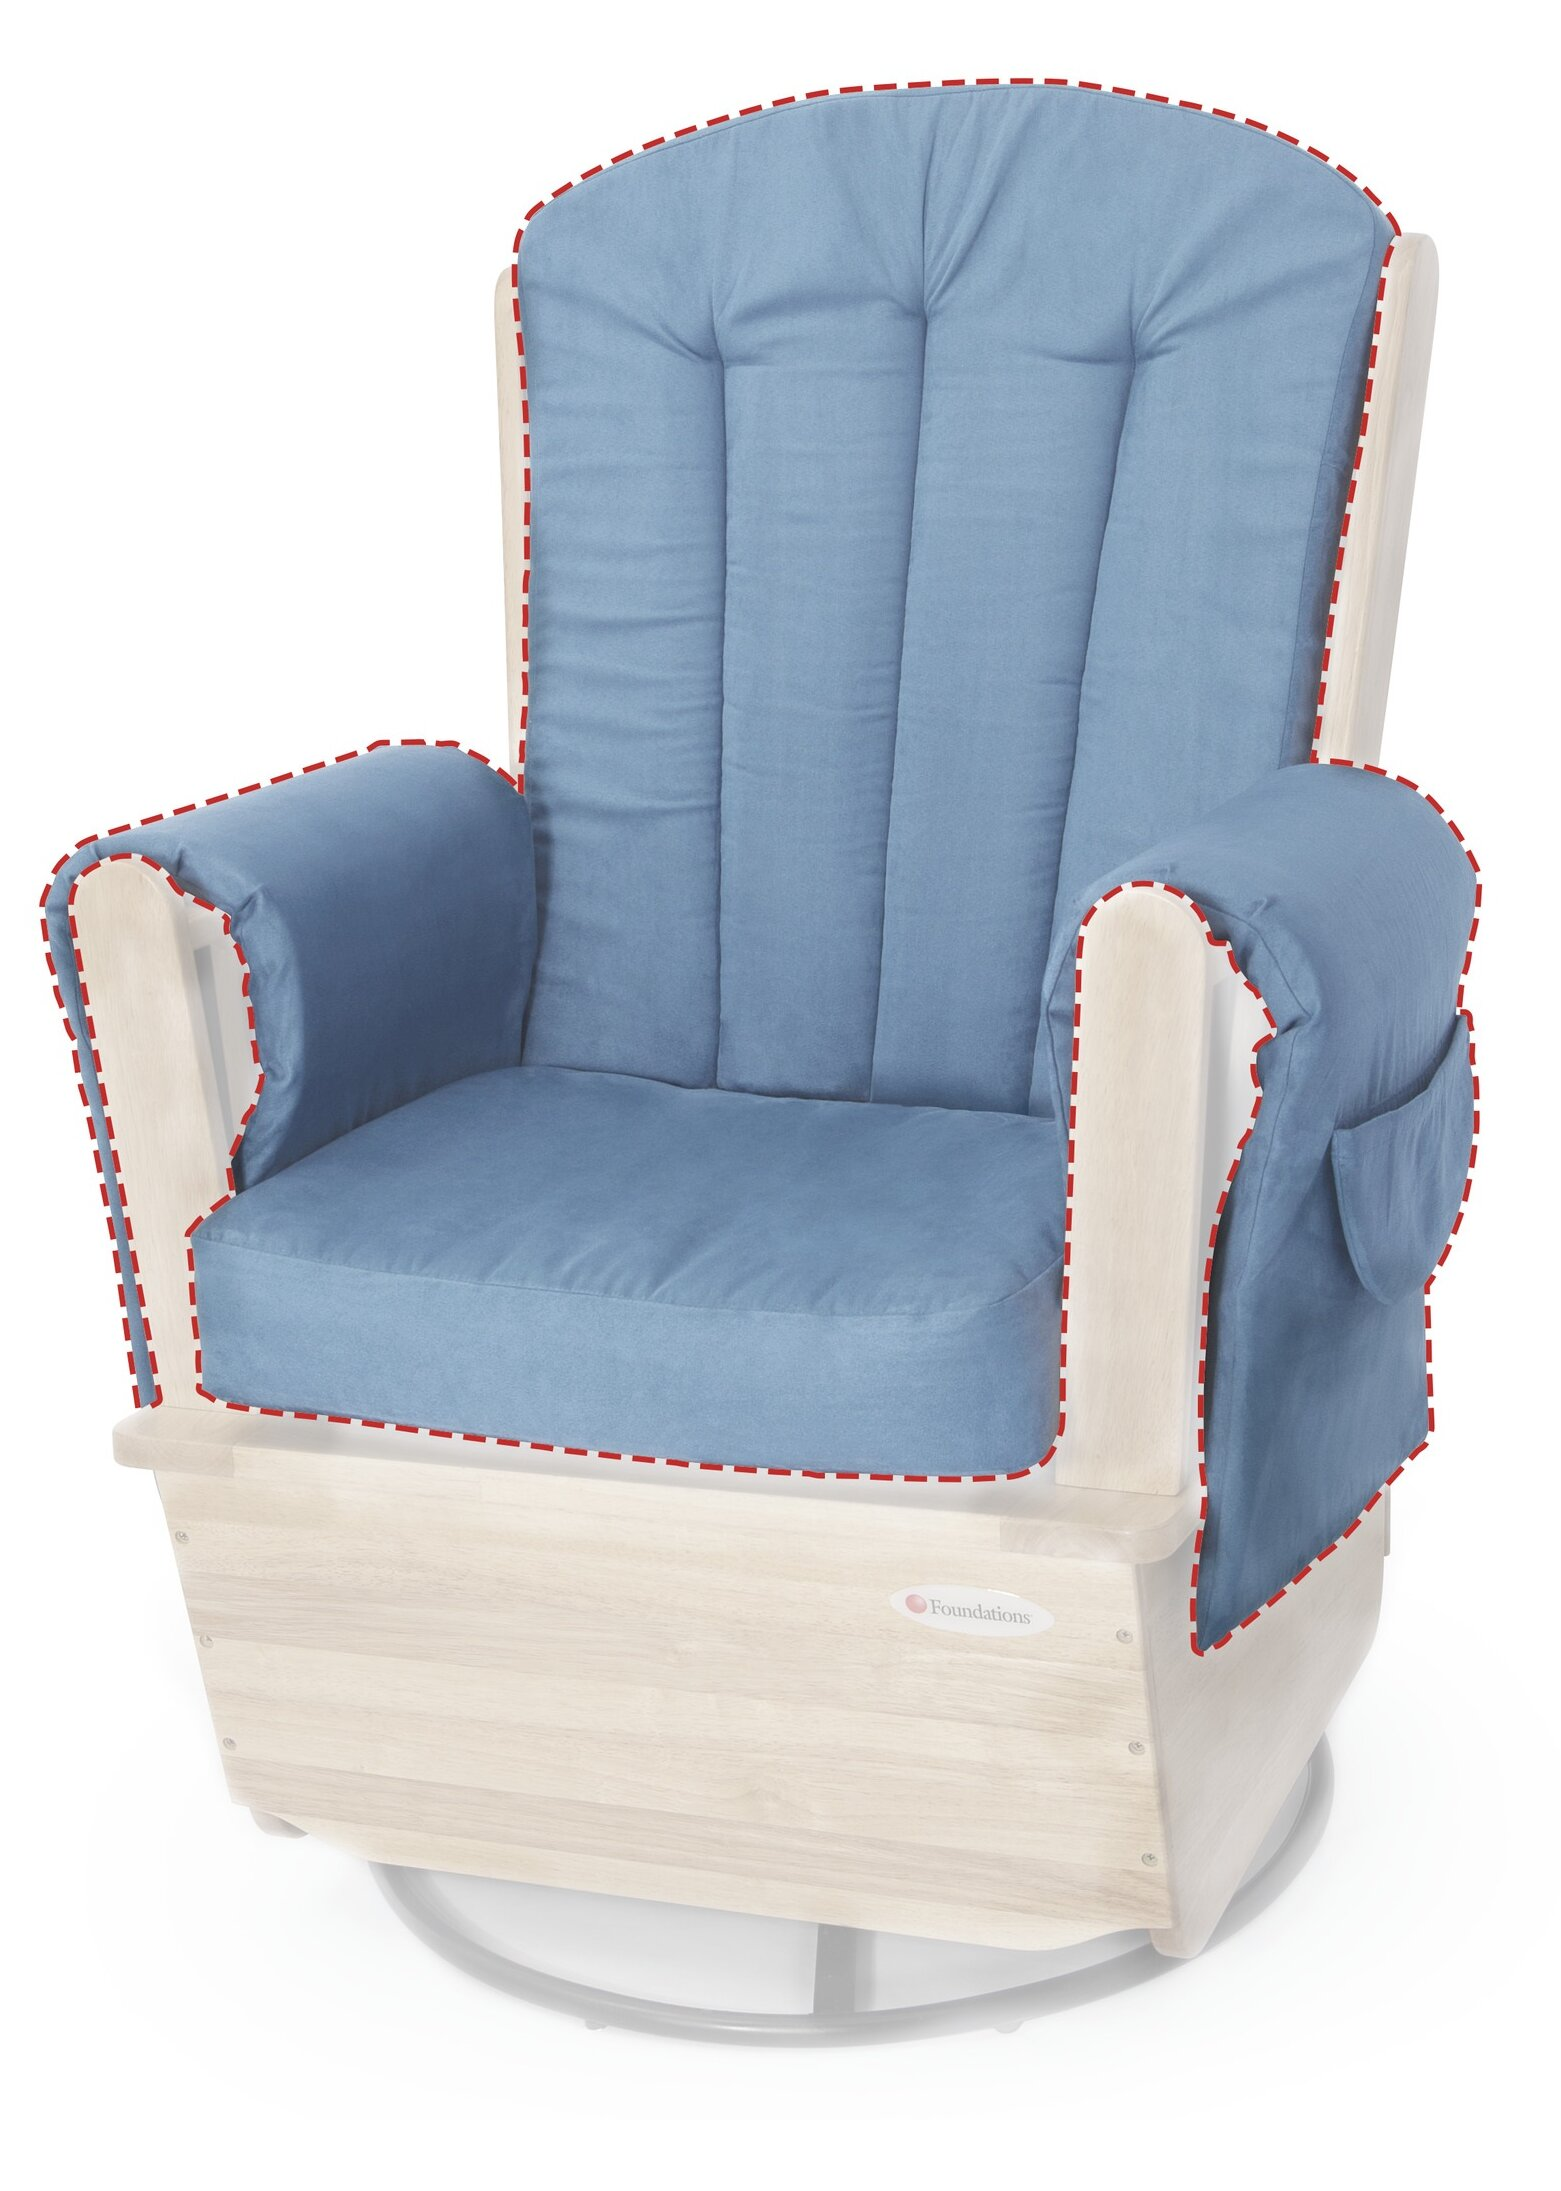 Picture of: Foundations Saferocker Replacement Indoor Rocking Chair Cushion Reviews